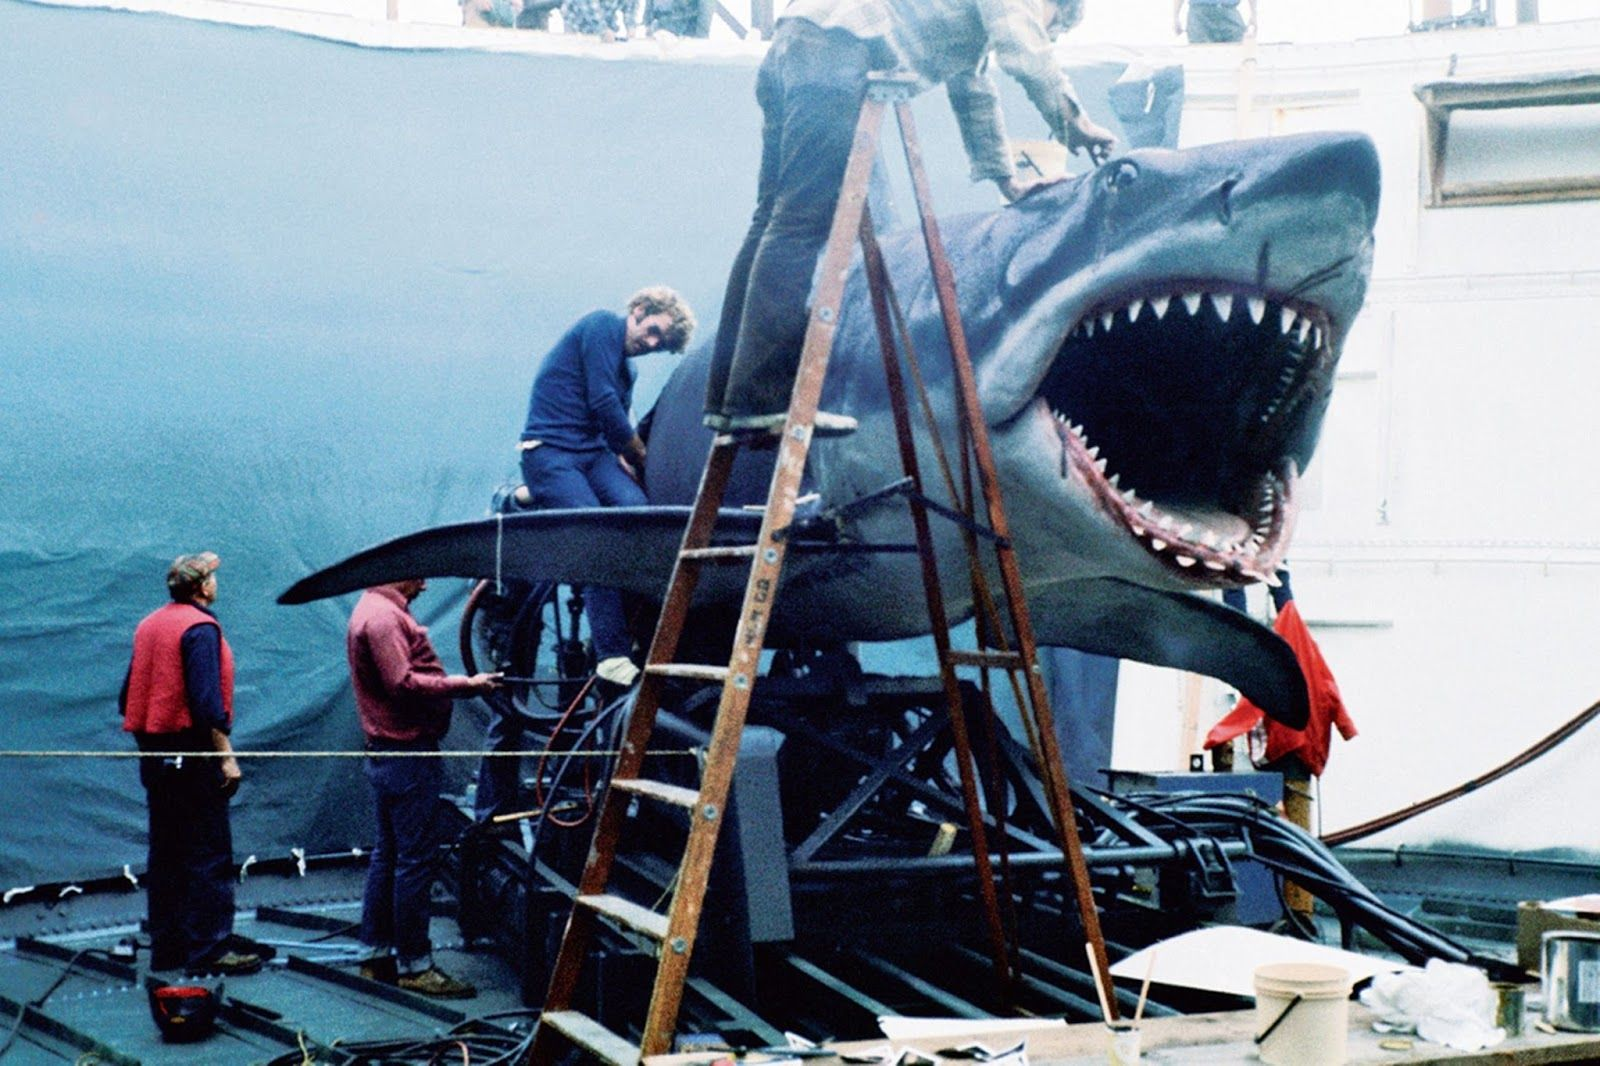 a670252e41411ace504106fc2f555204 27 Things You Didn't Know About Jaws